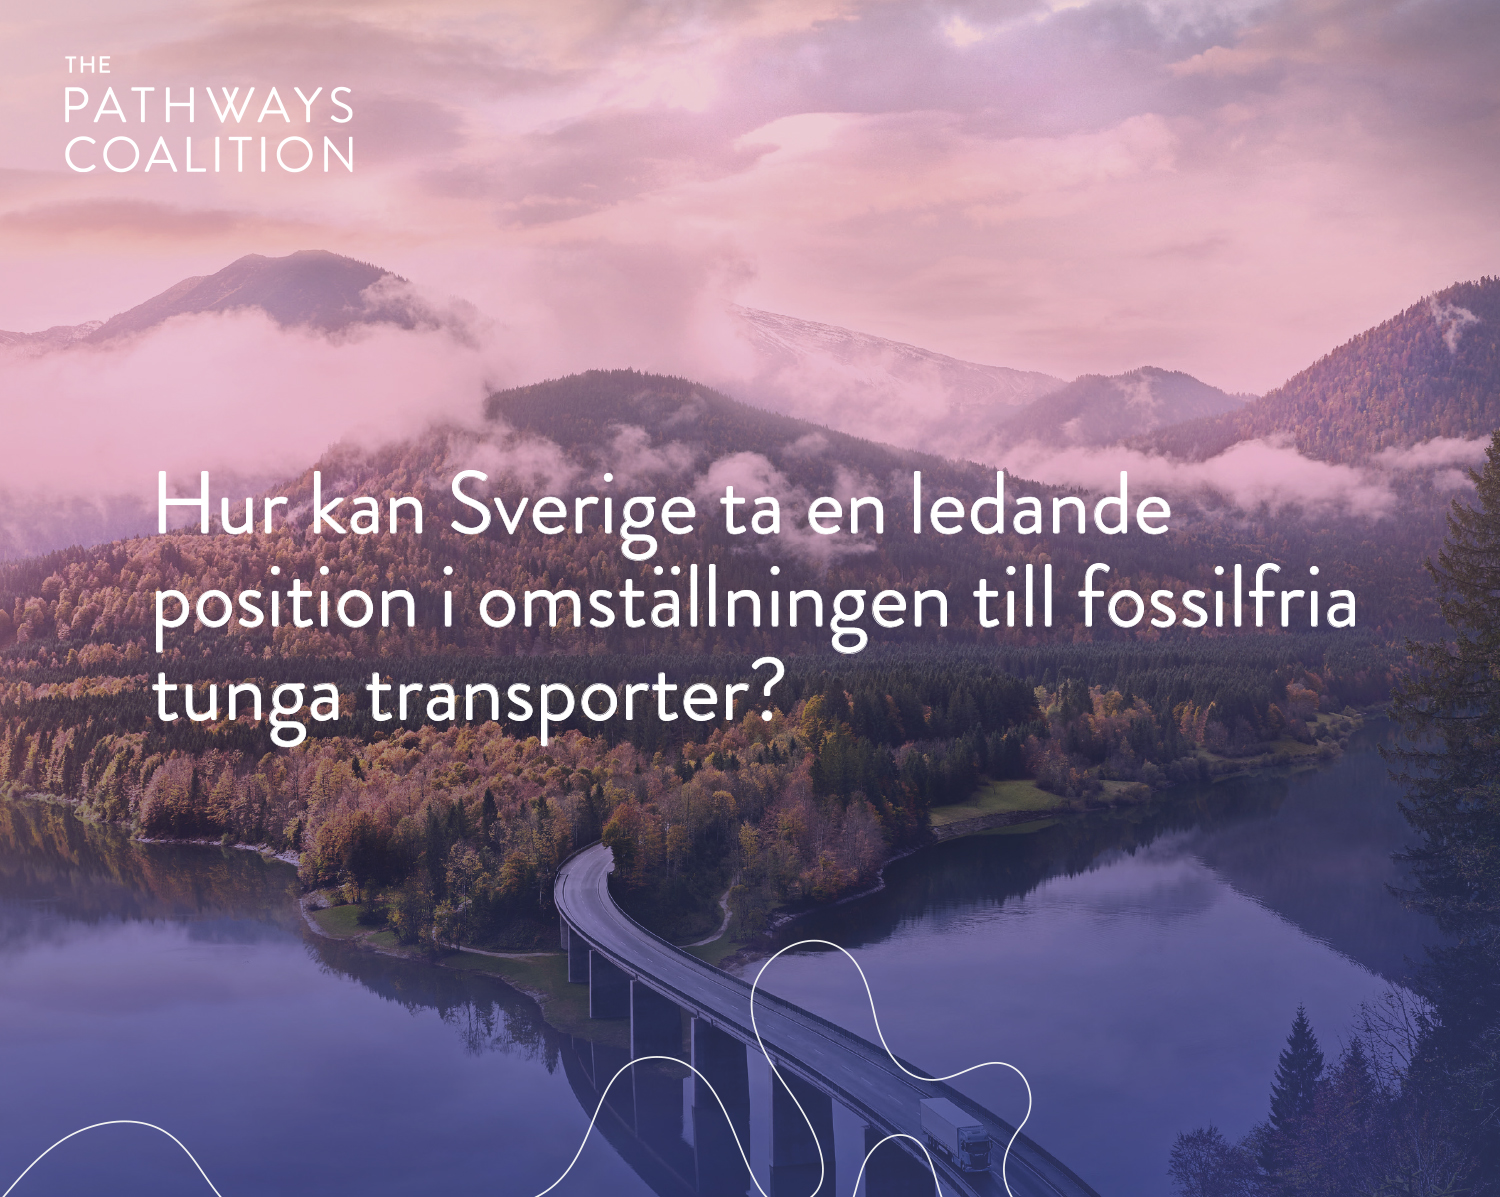 Autumn mountain landcape with truck driving over a bridge. Text in Swedish and The Pathways Coalition logo on photo.